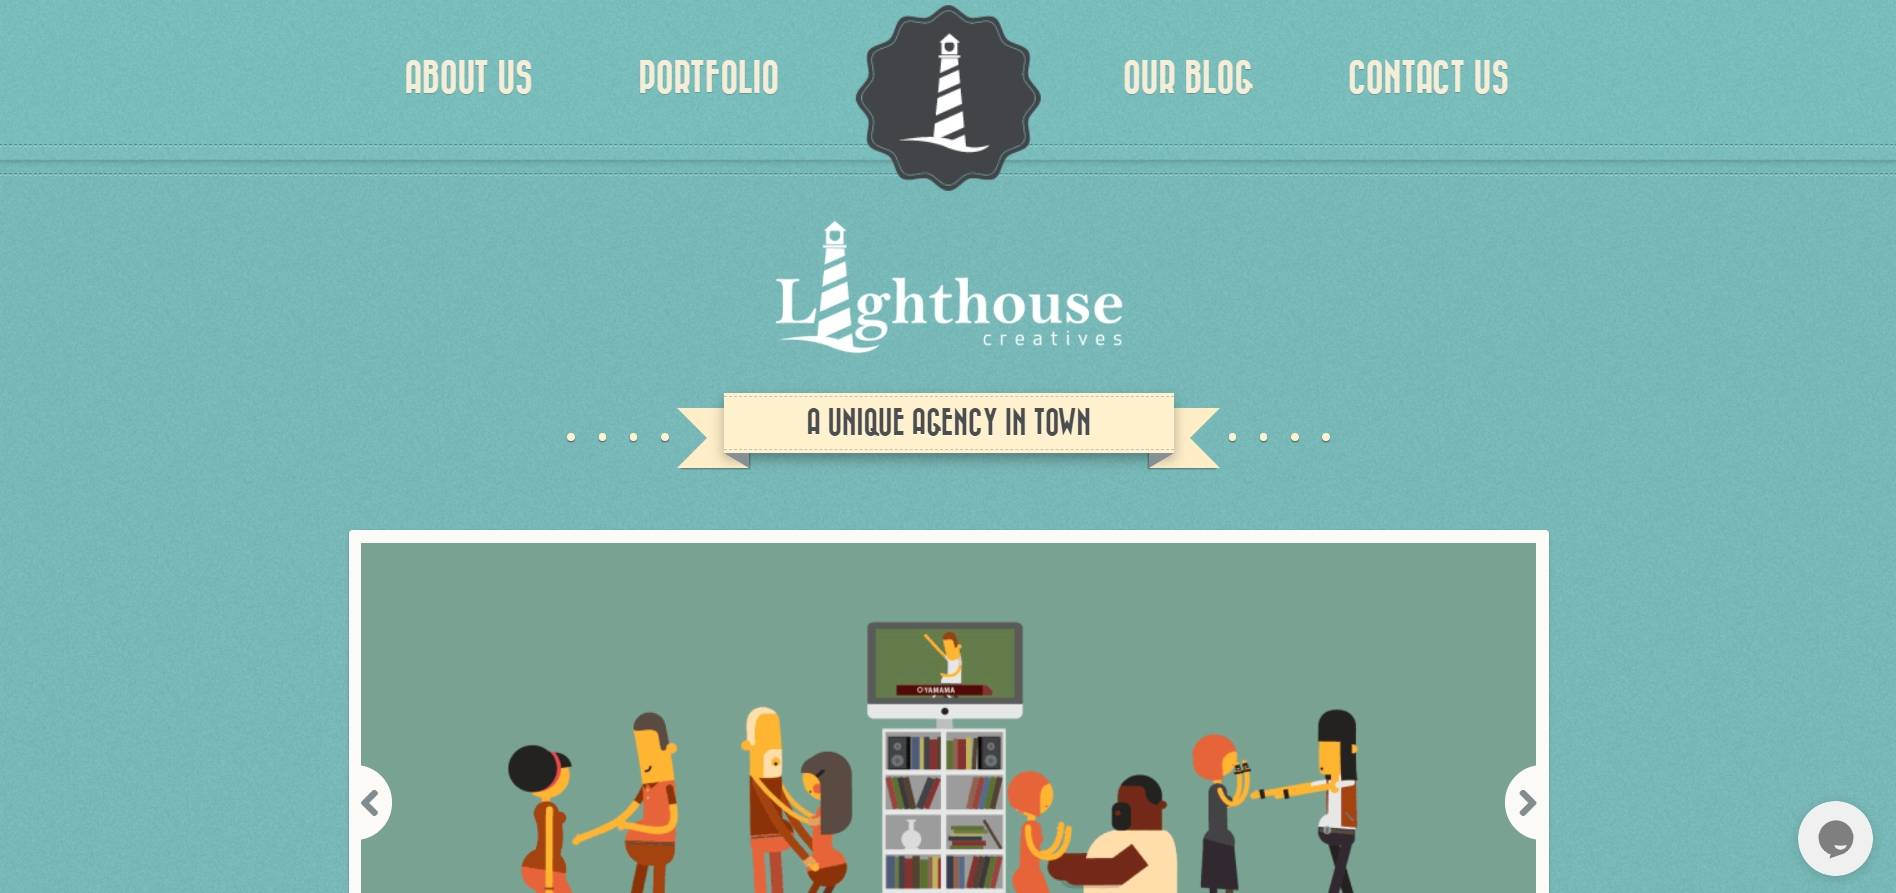 Lighthouse Creatives